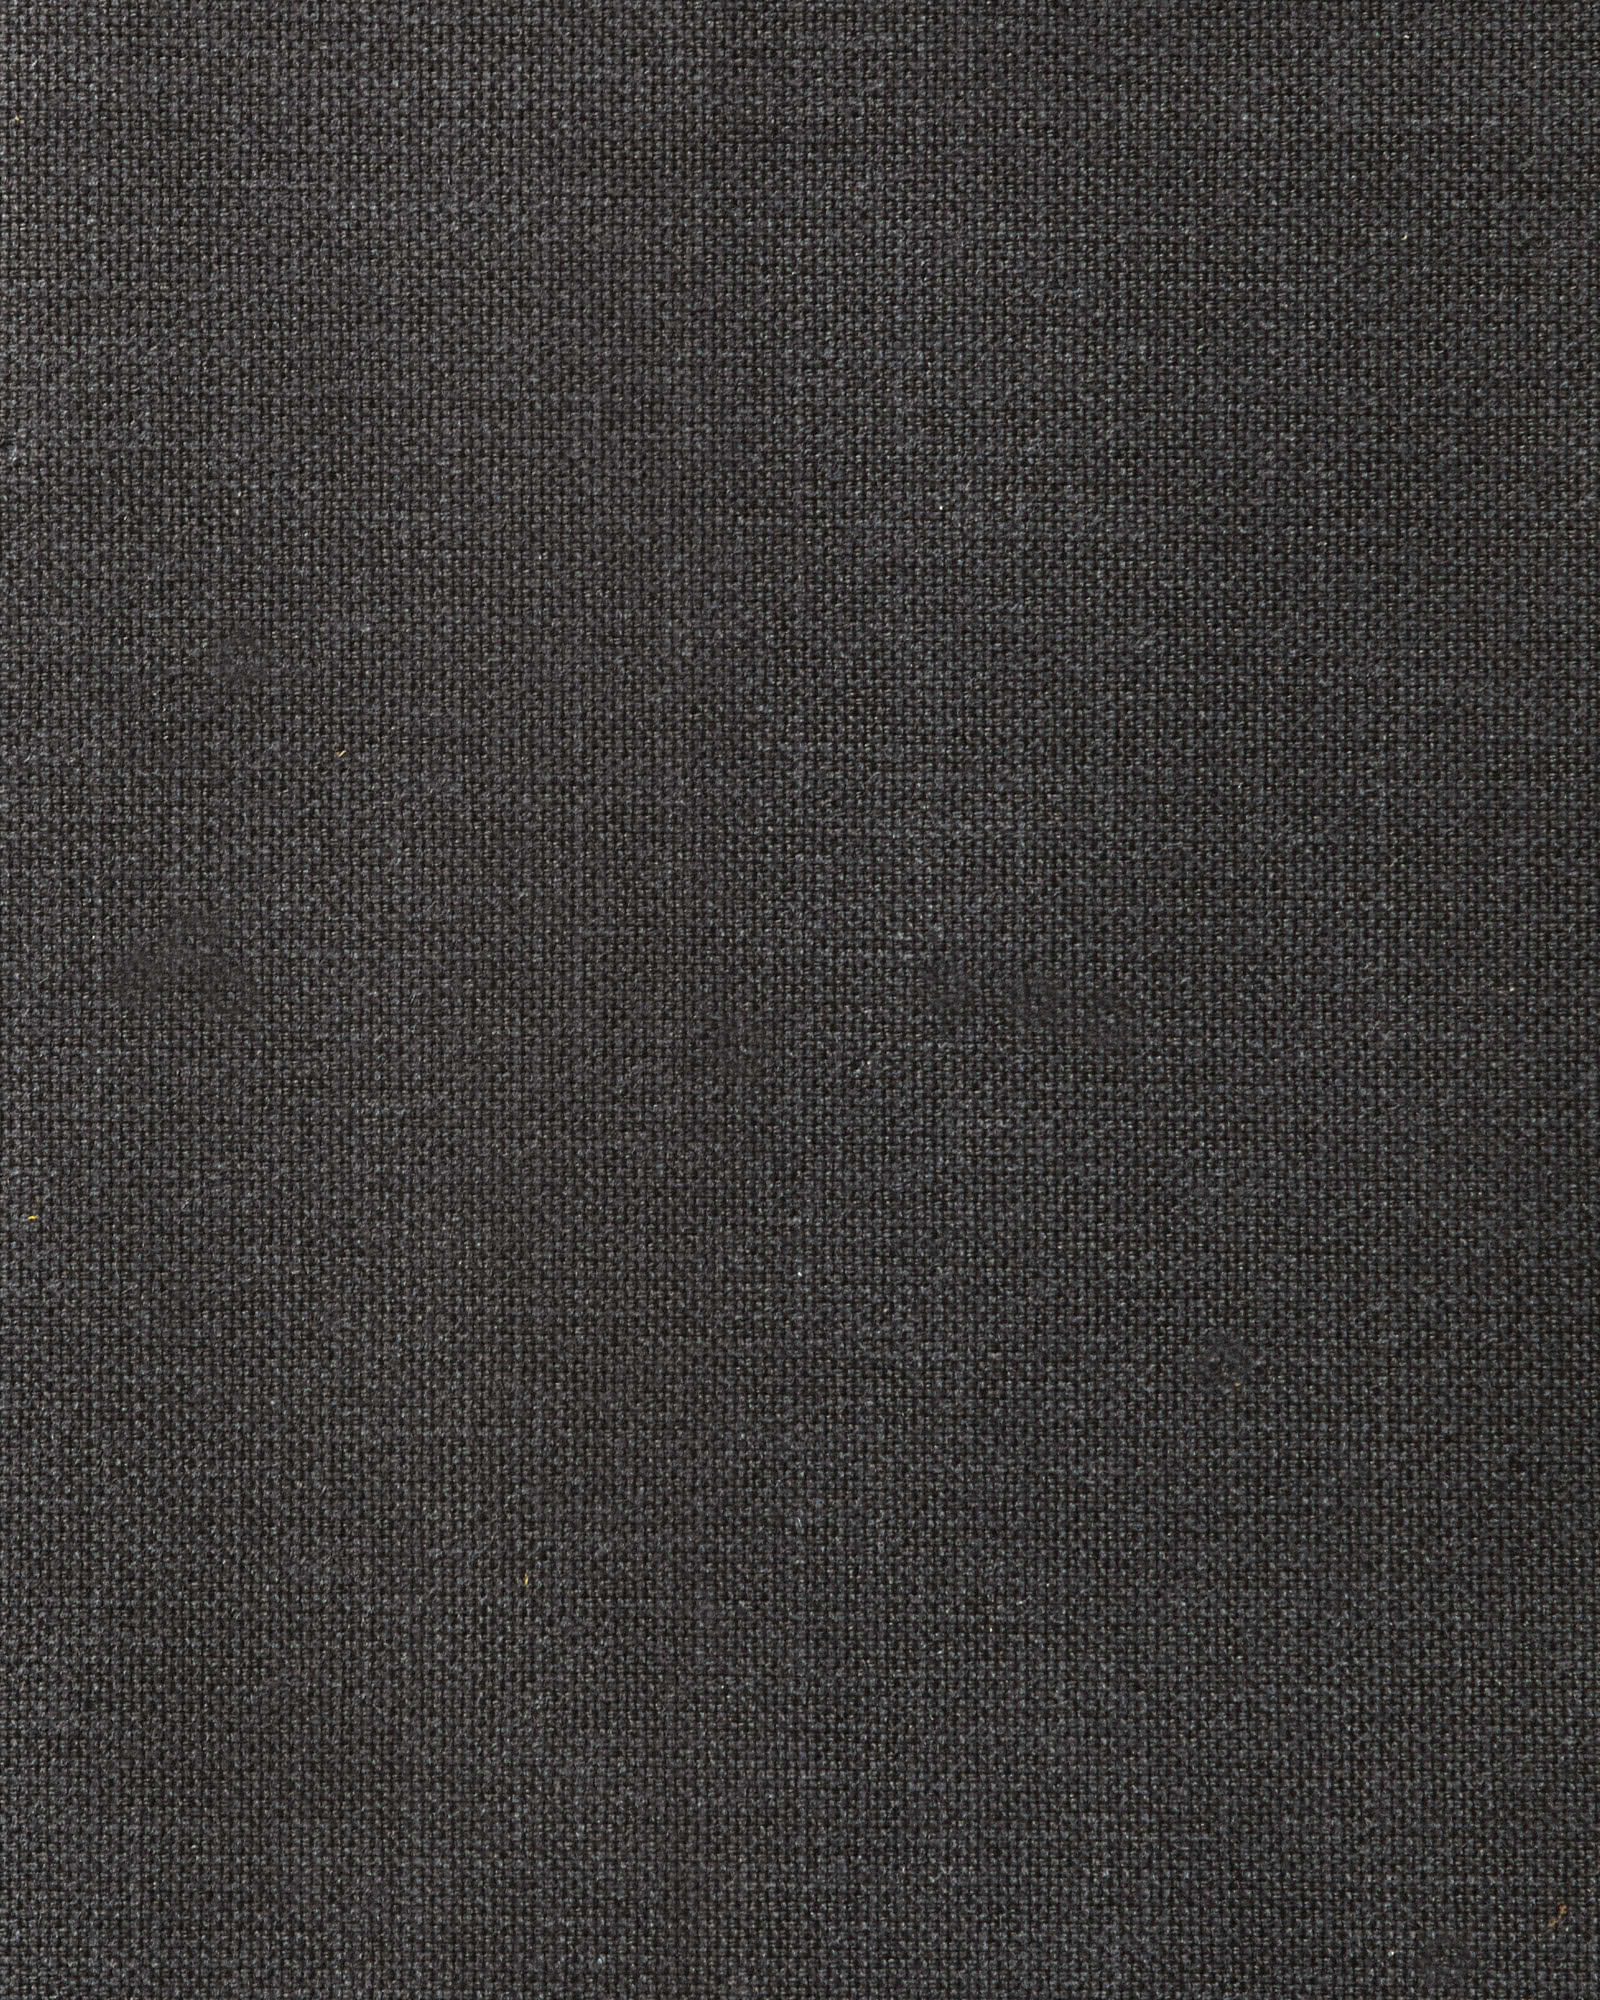 Brushed Cotton Canvas - Graphite